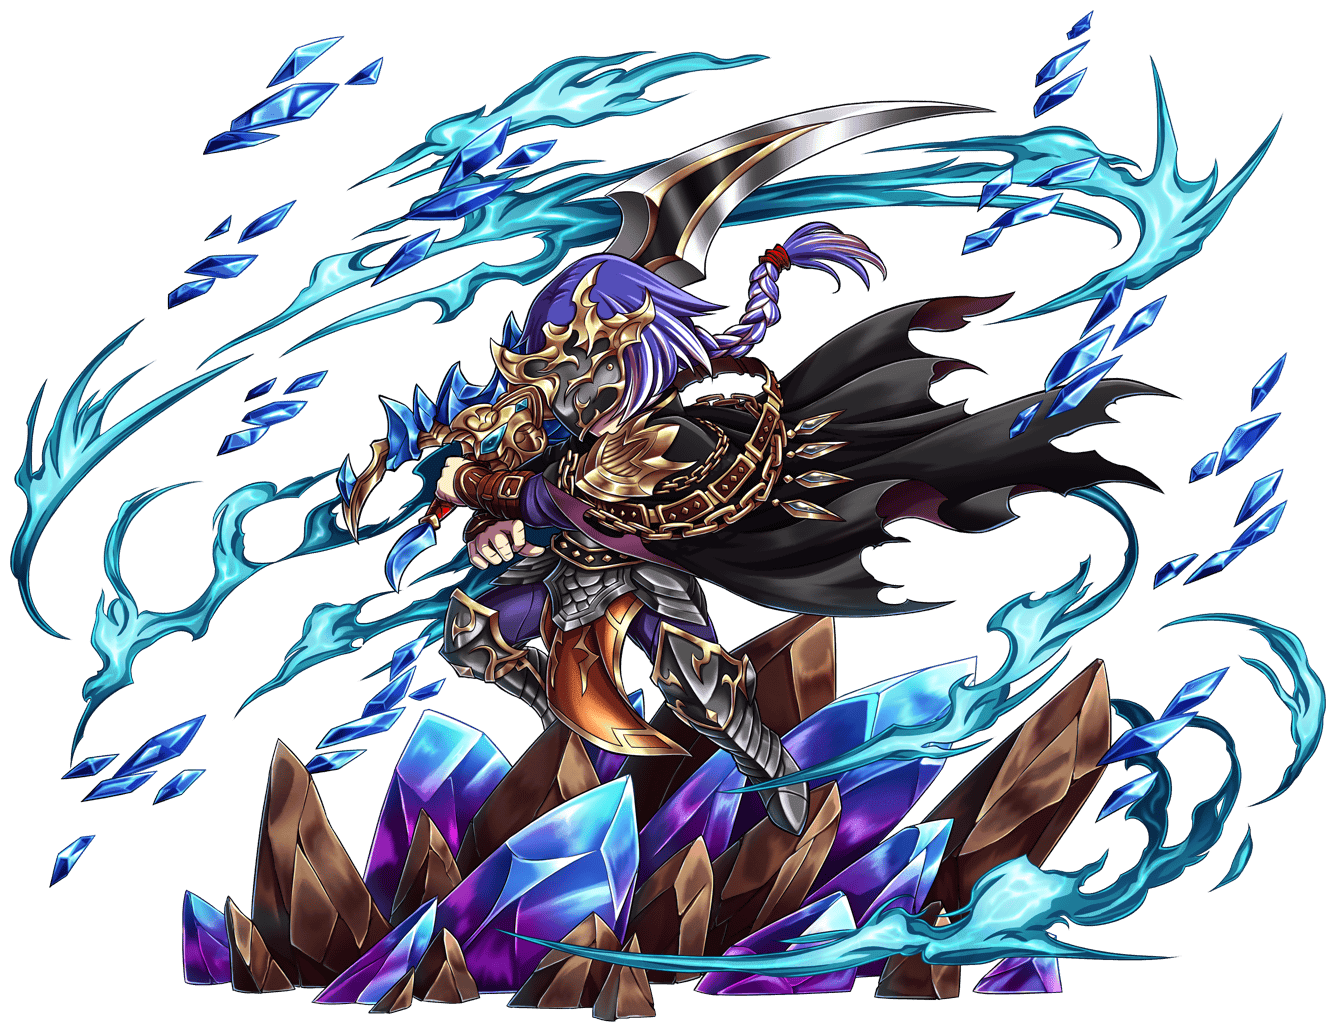 NEW 7* BATCH COMING UP (11TH BACH) | Brave Frontier Guide | 1336 x 1032 png 371kB